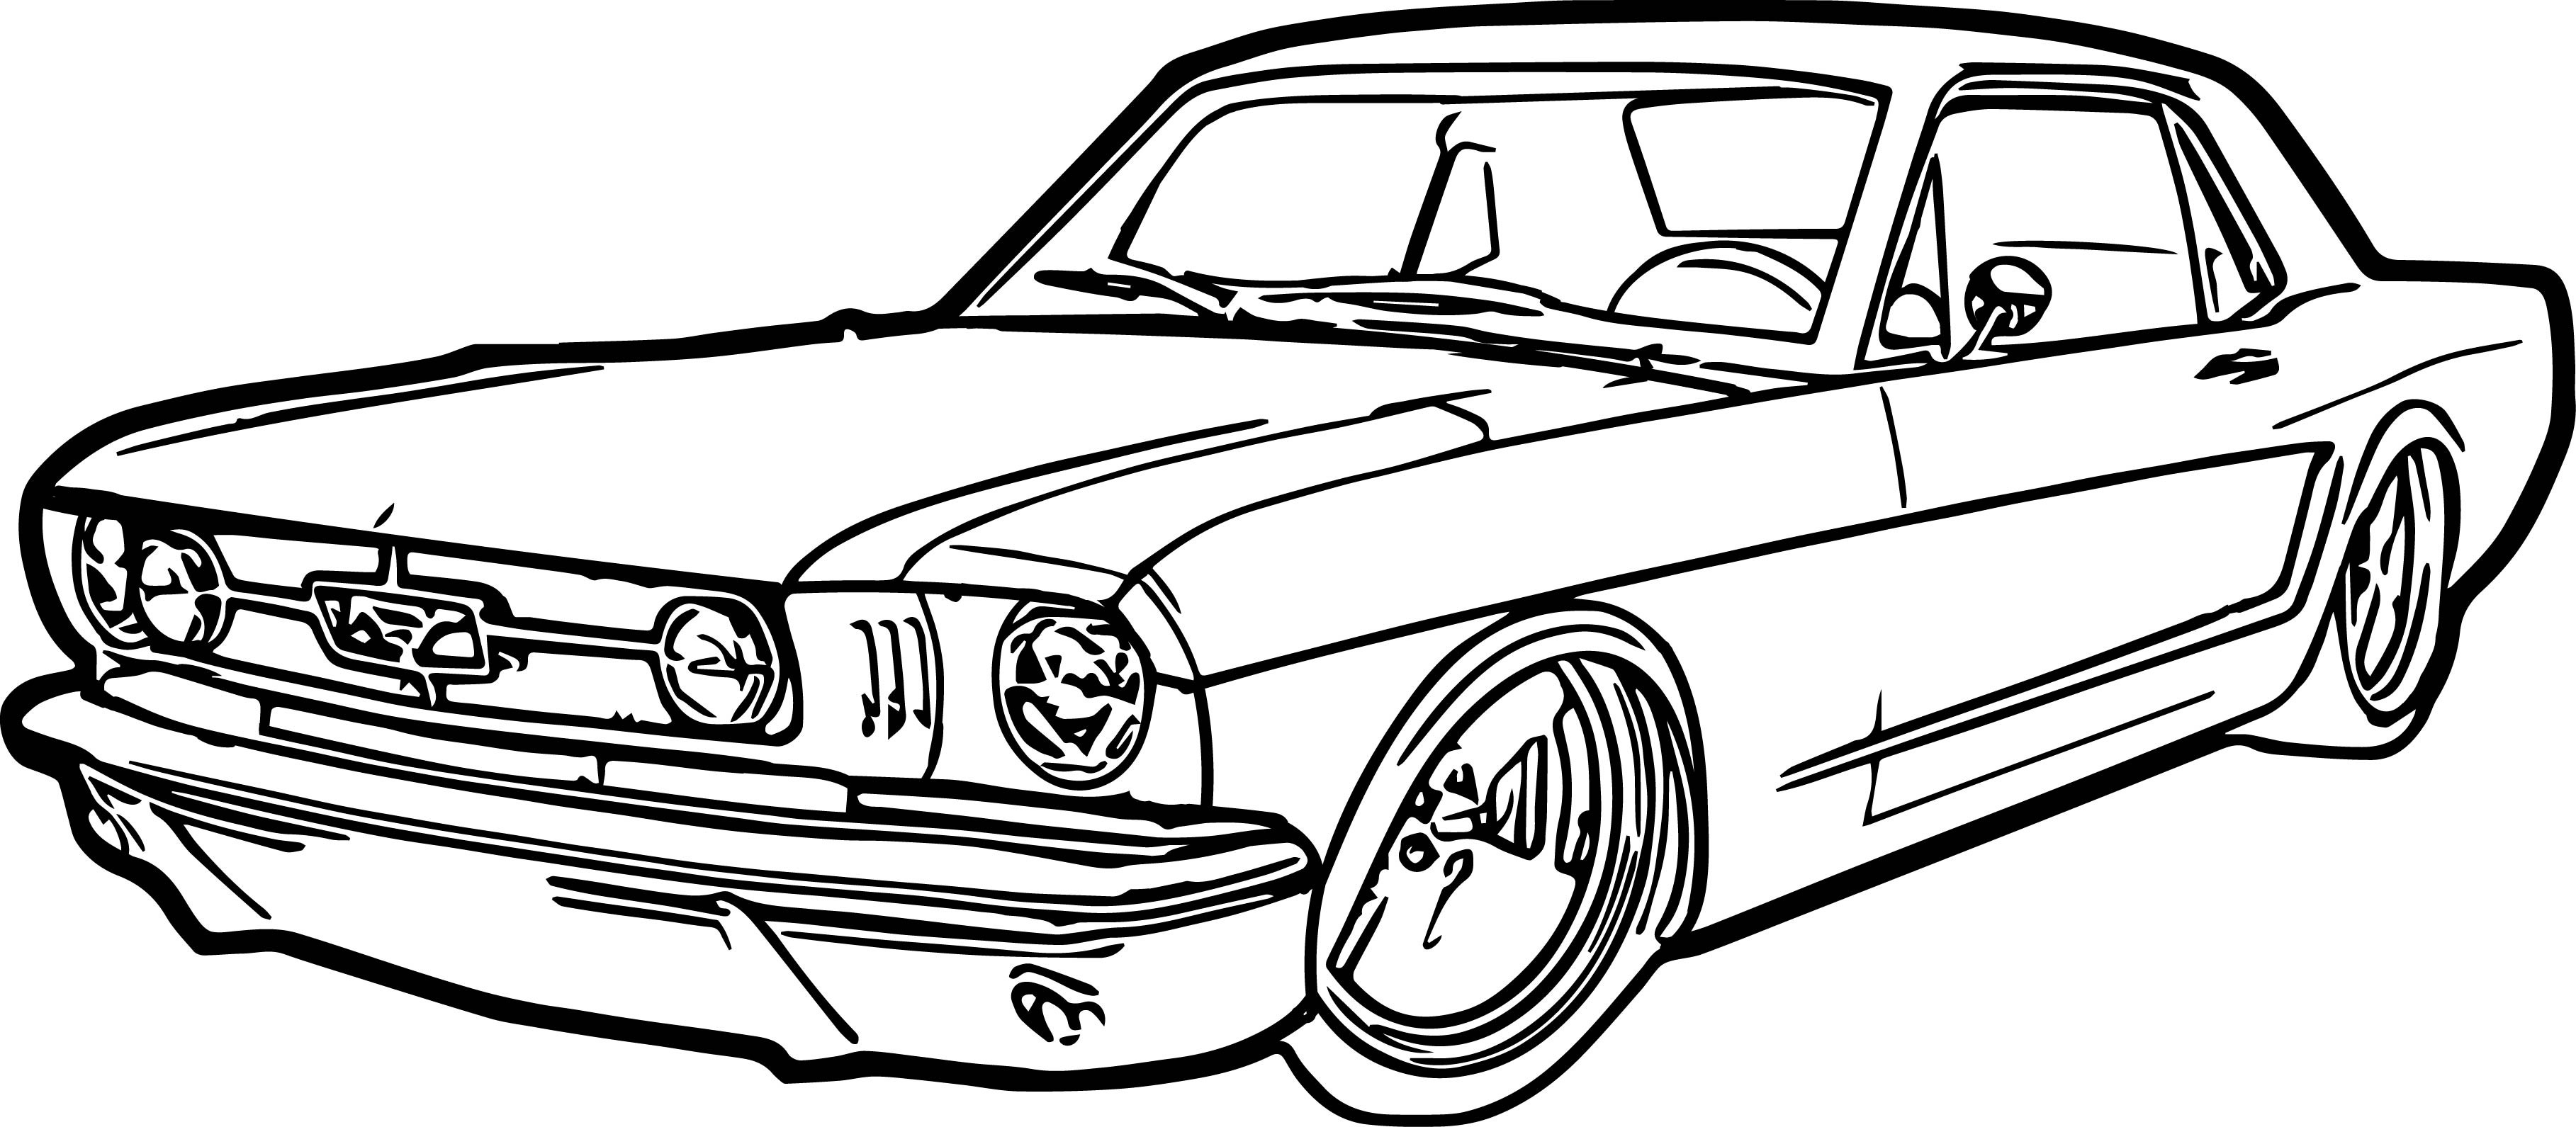 3635x1591 Coloring Page Of Cars Free Draw To Color